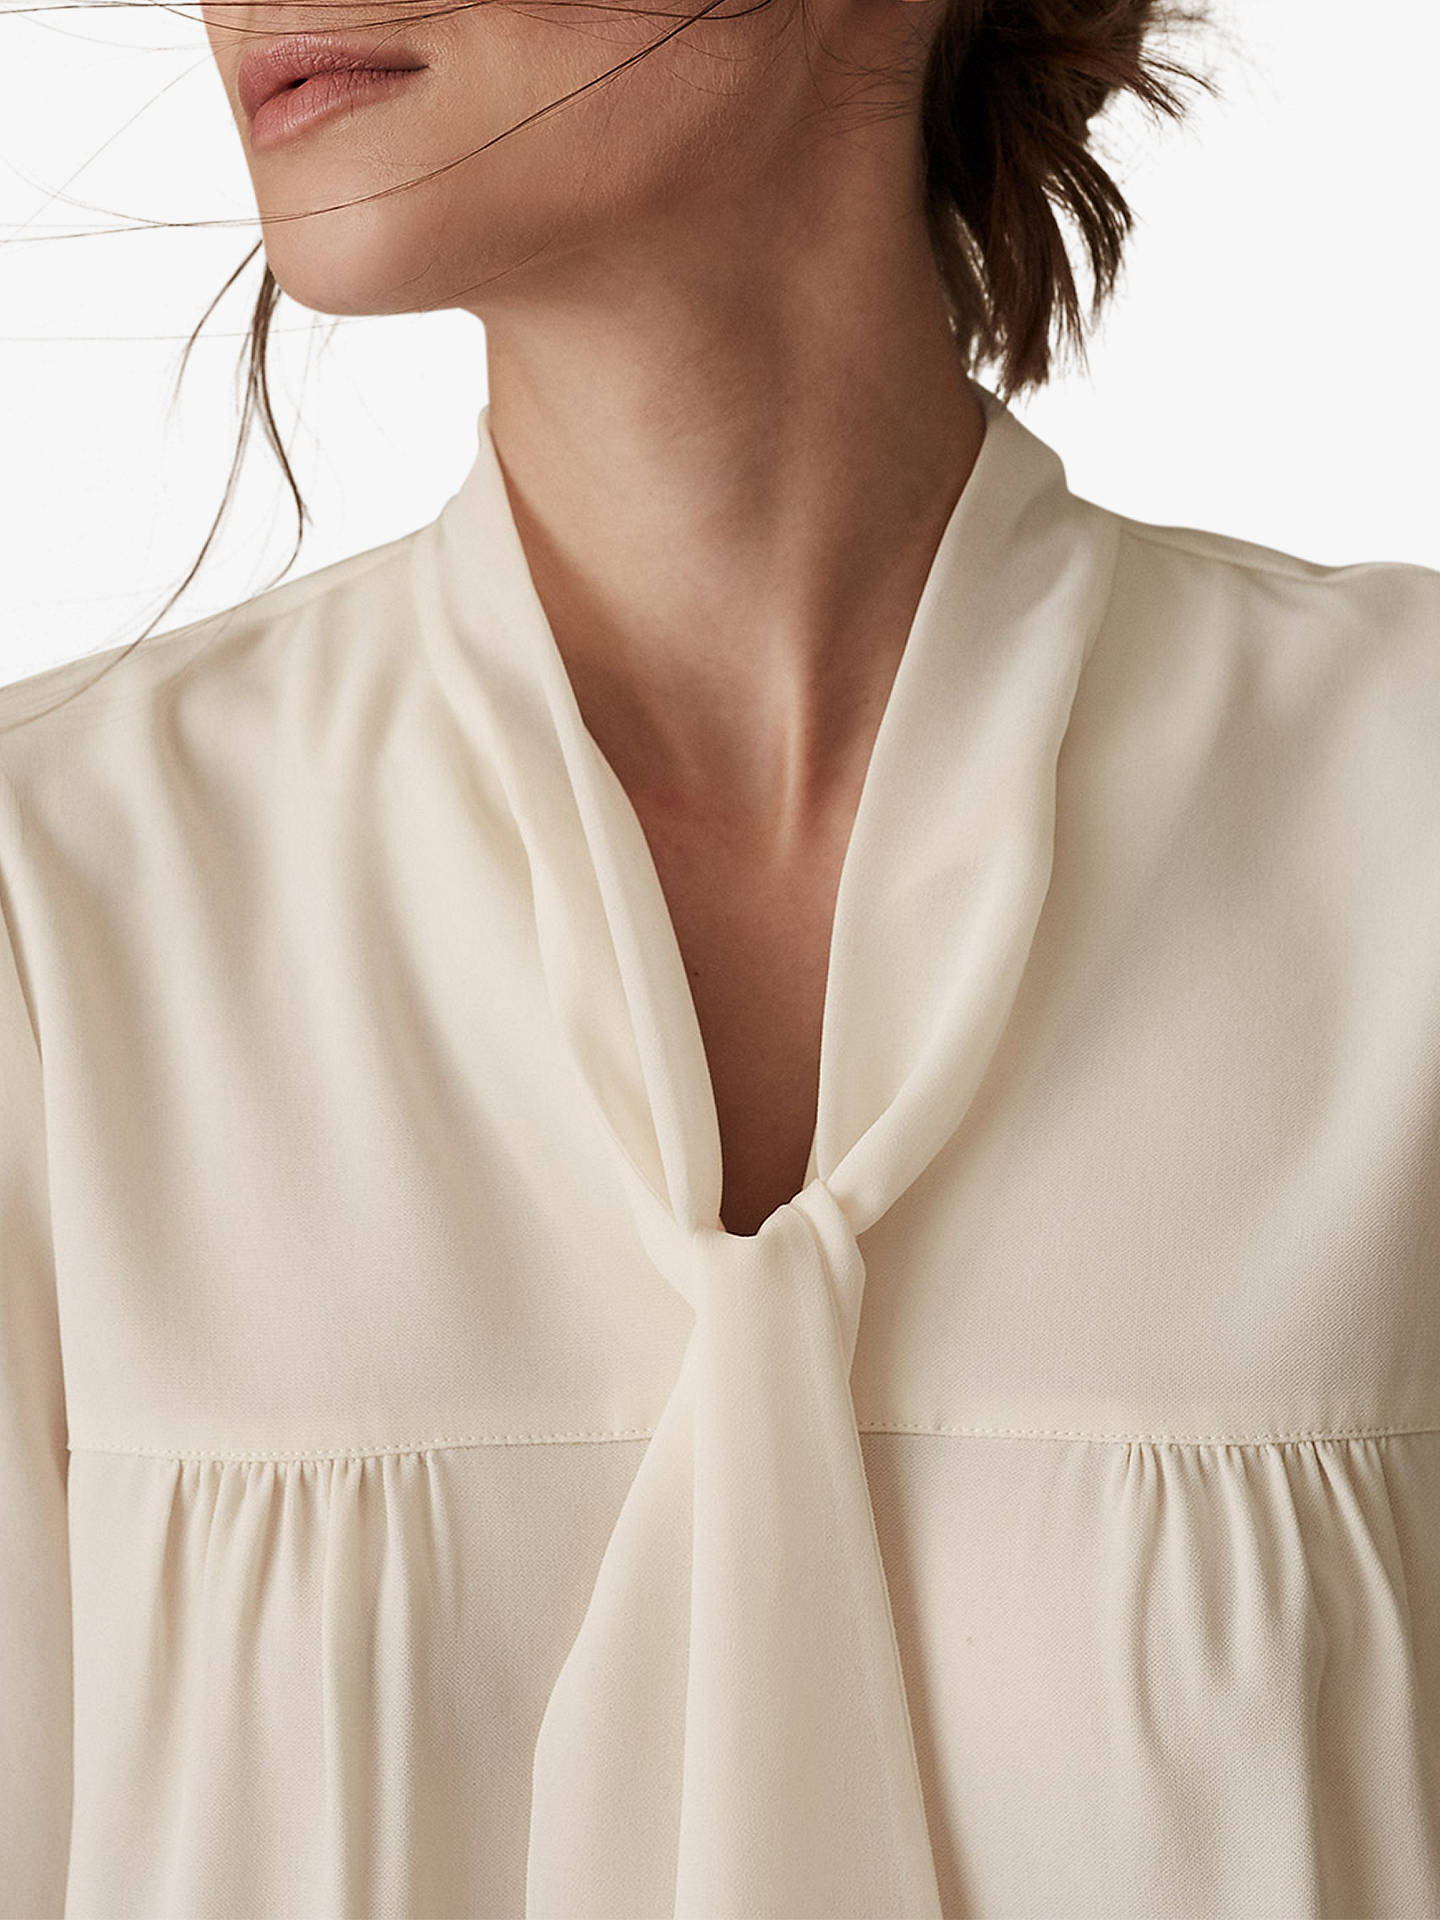 Buy Reiss Catalina Tie Neck Blouse, Off White, 6 Online at johnlewis.com